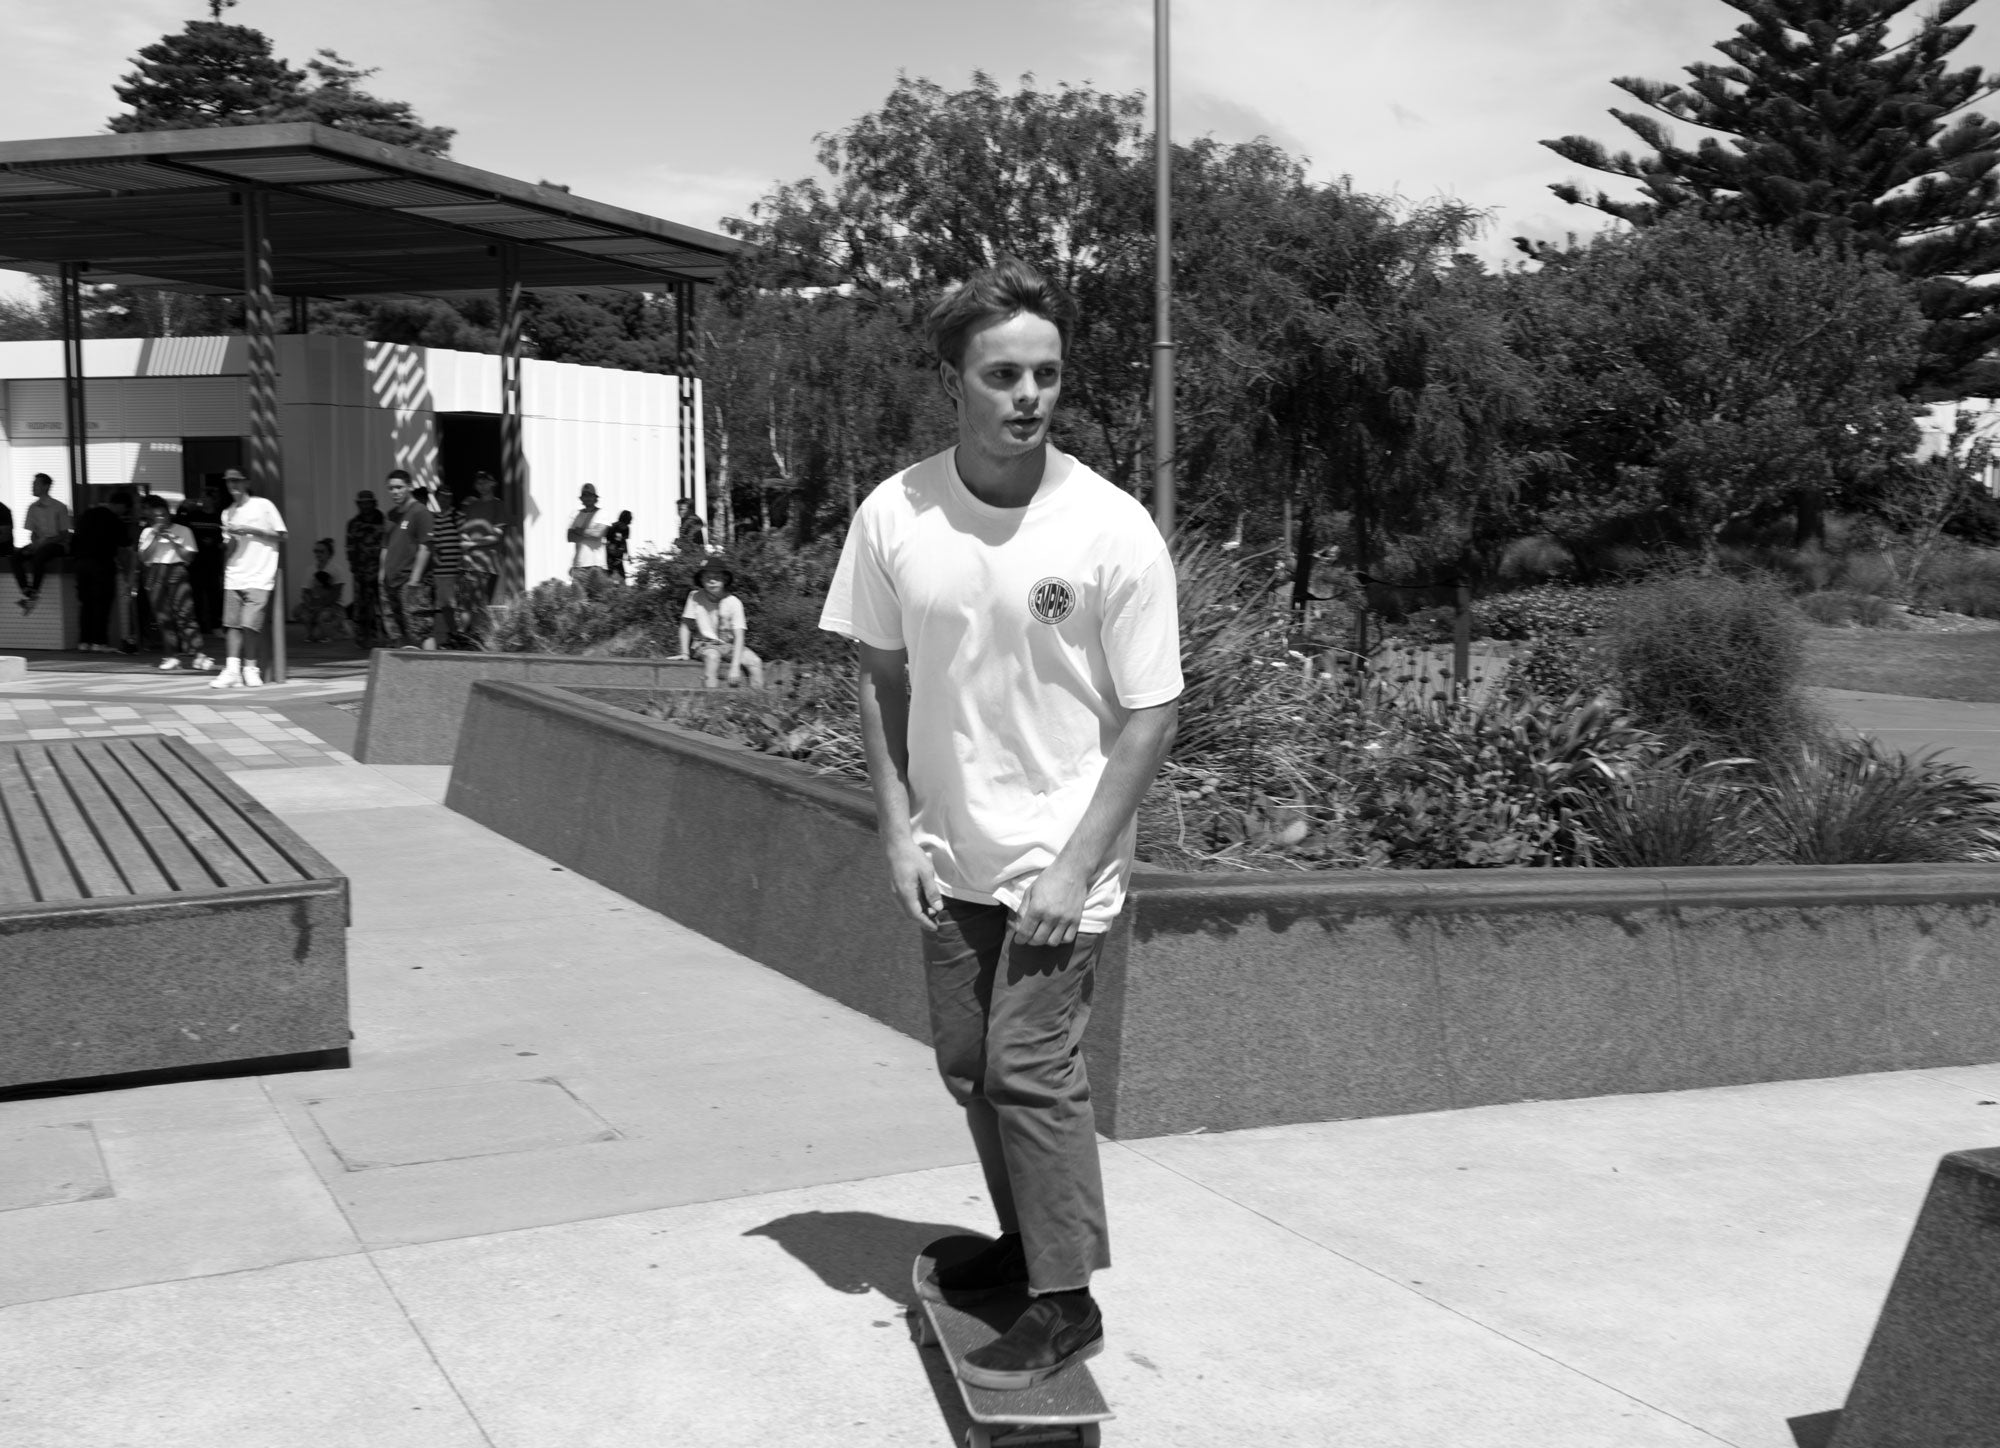 Skateboarder in white Empire tee